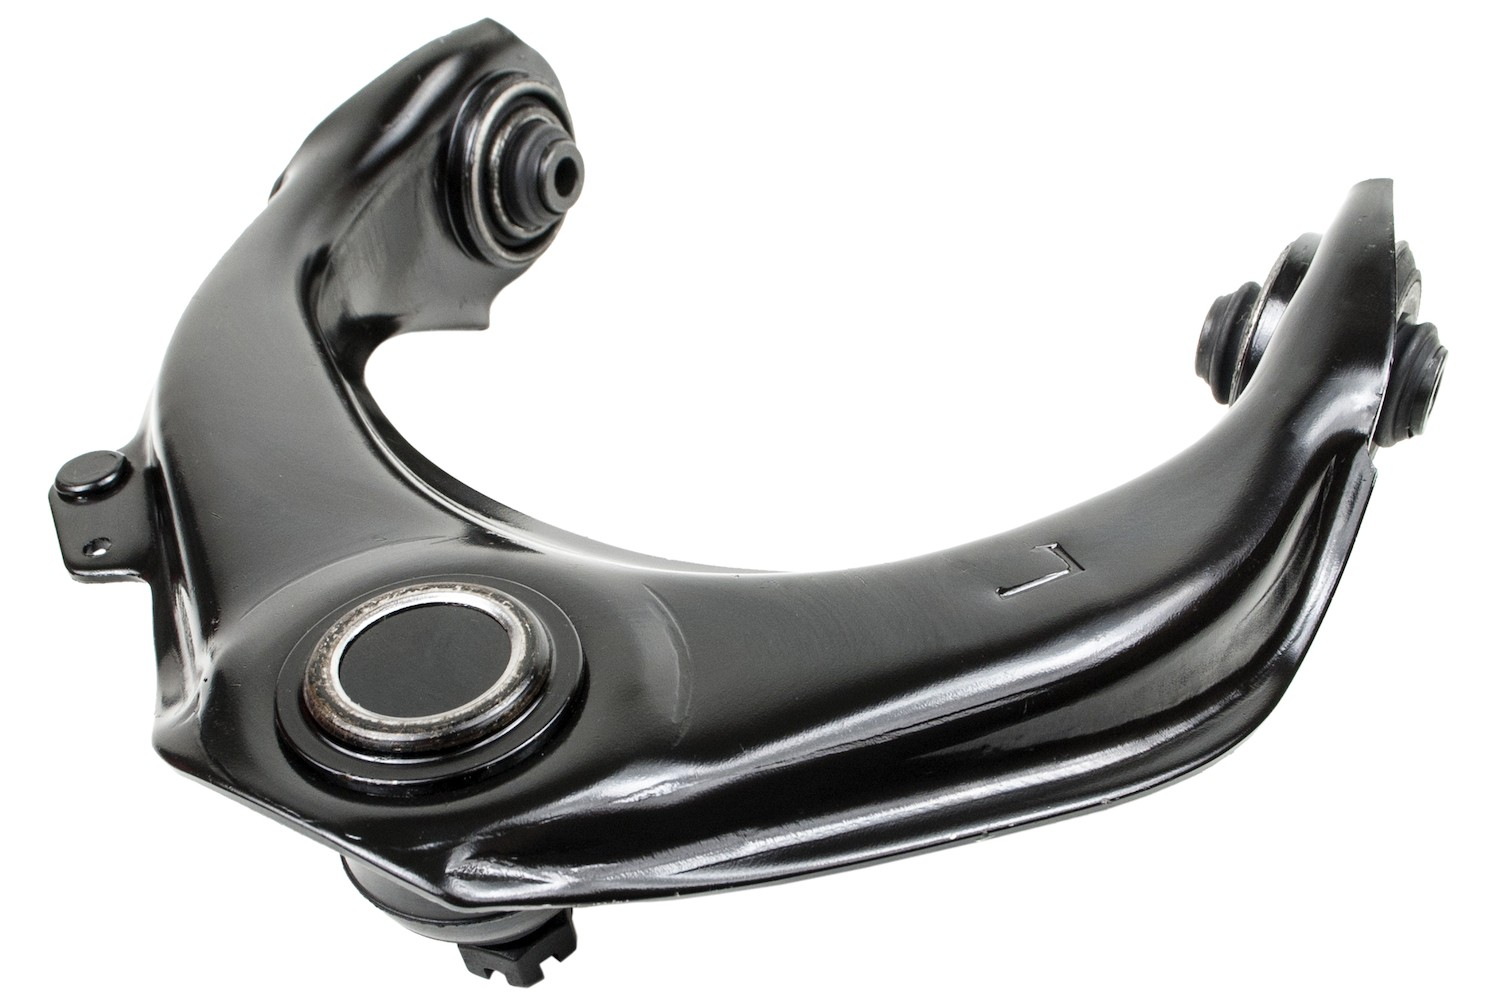 1999 Acura TL Suspension Control Arm and Ball Joint Assembly